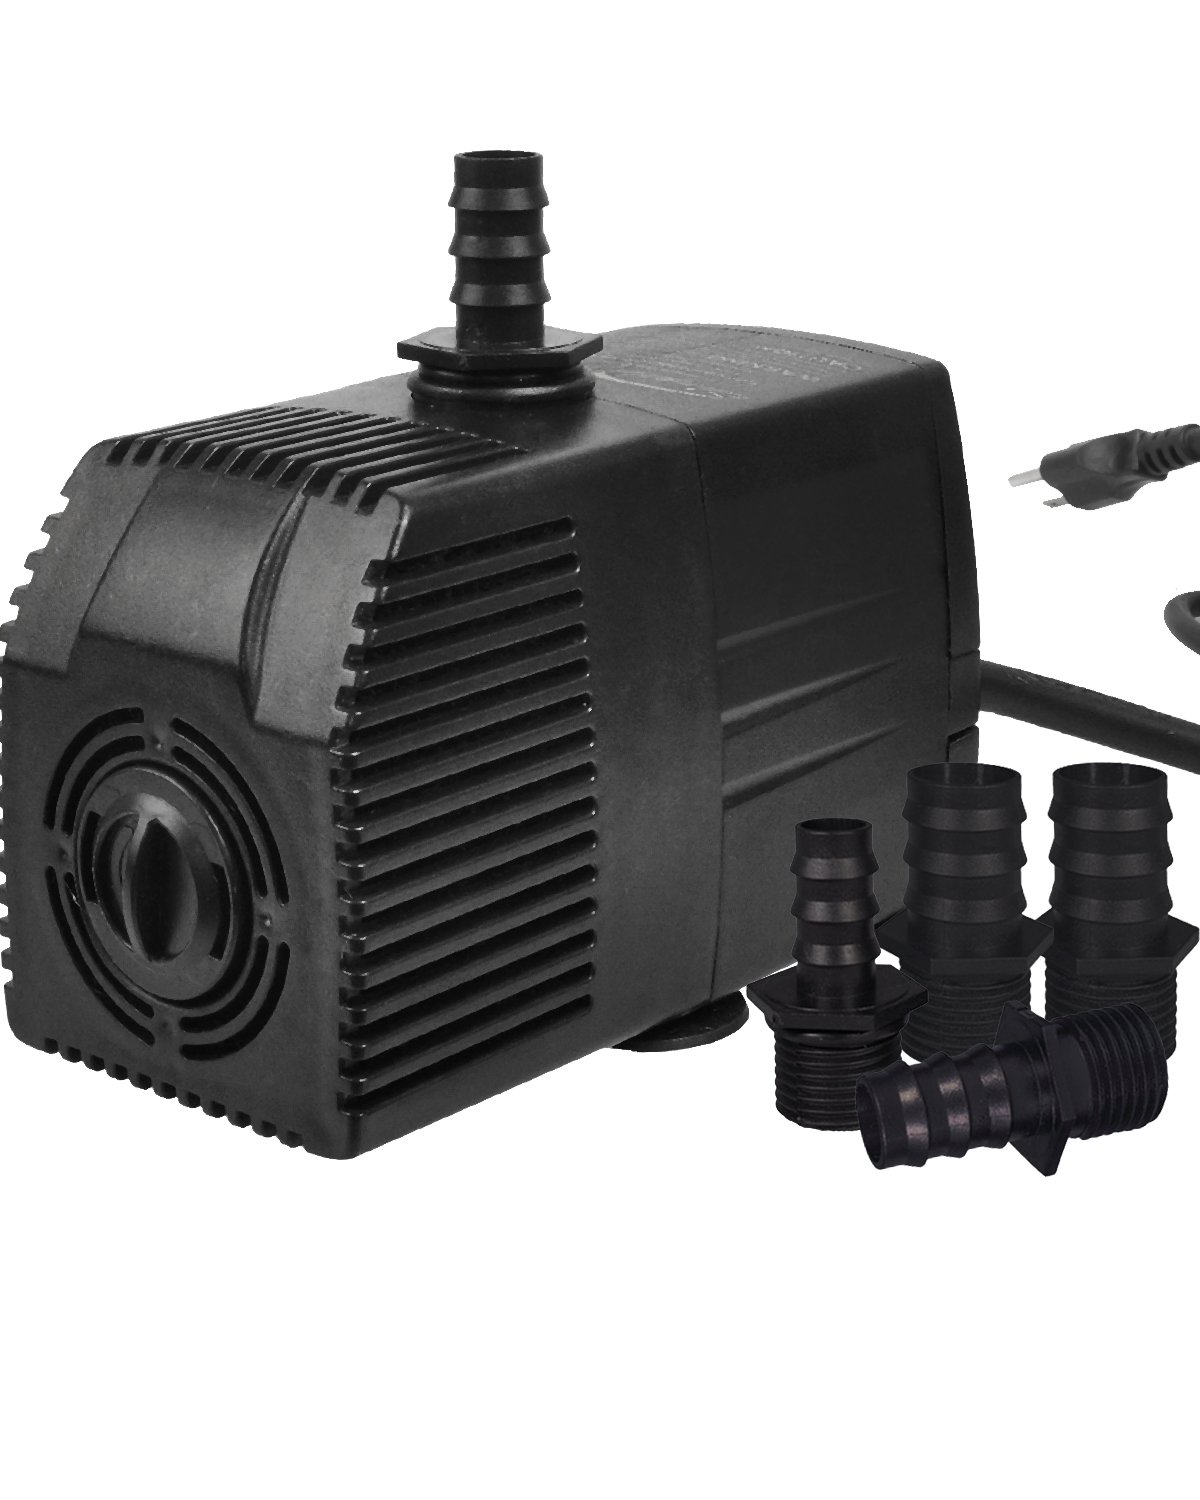 400-GPH Simple Deluxe 400 GPH UL Listed Submersible Pump with 15' Cord, Water Pump for Fish Tank, Hydroponics, Aquaponics, Fountains, Ponds, Statuary, Aquariums & more